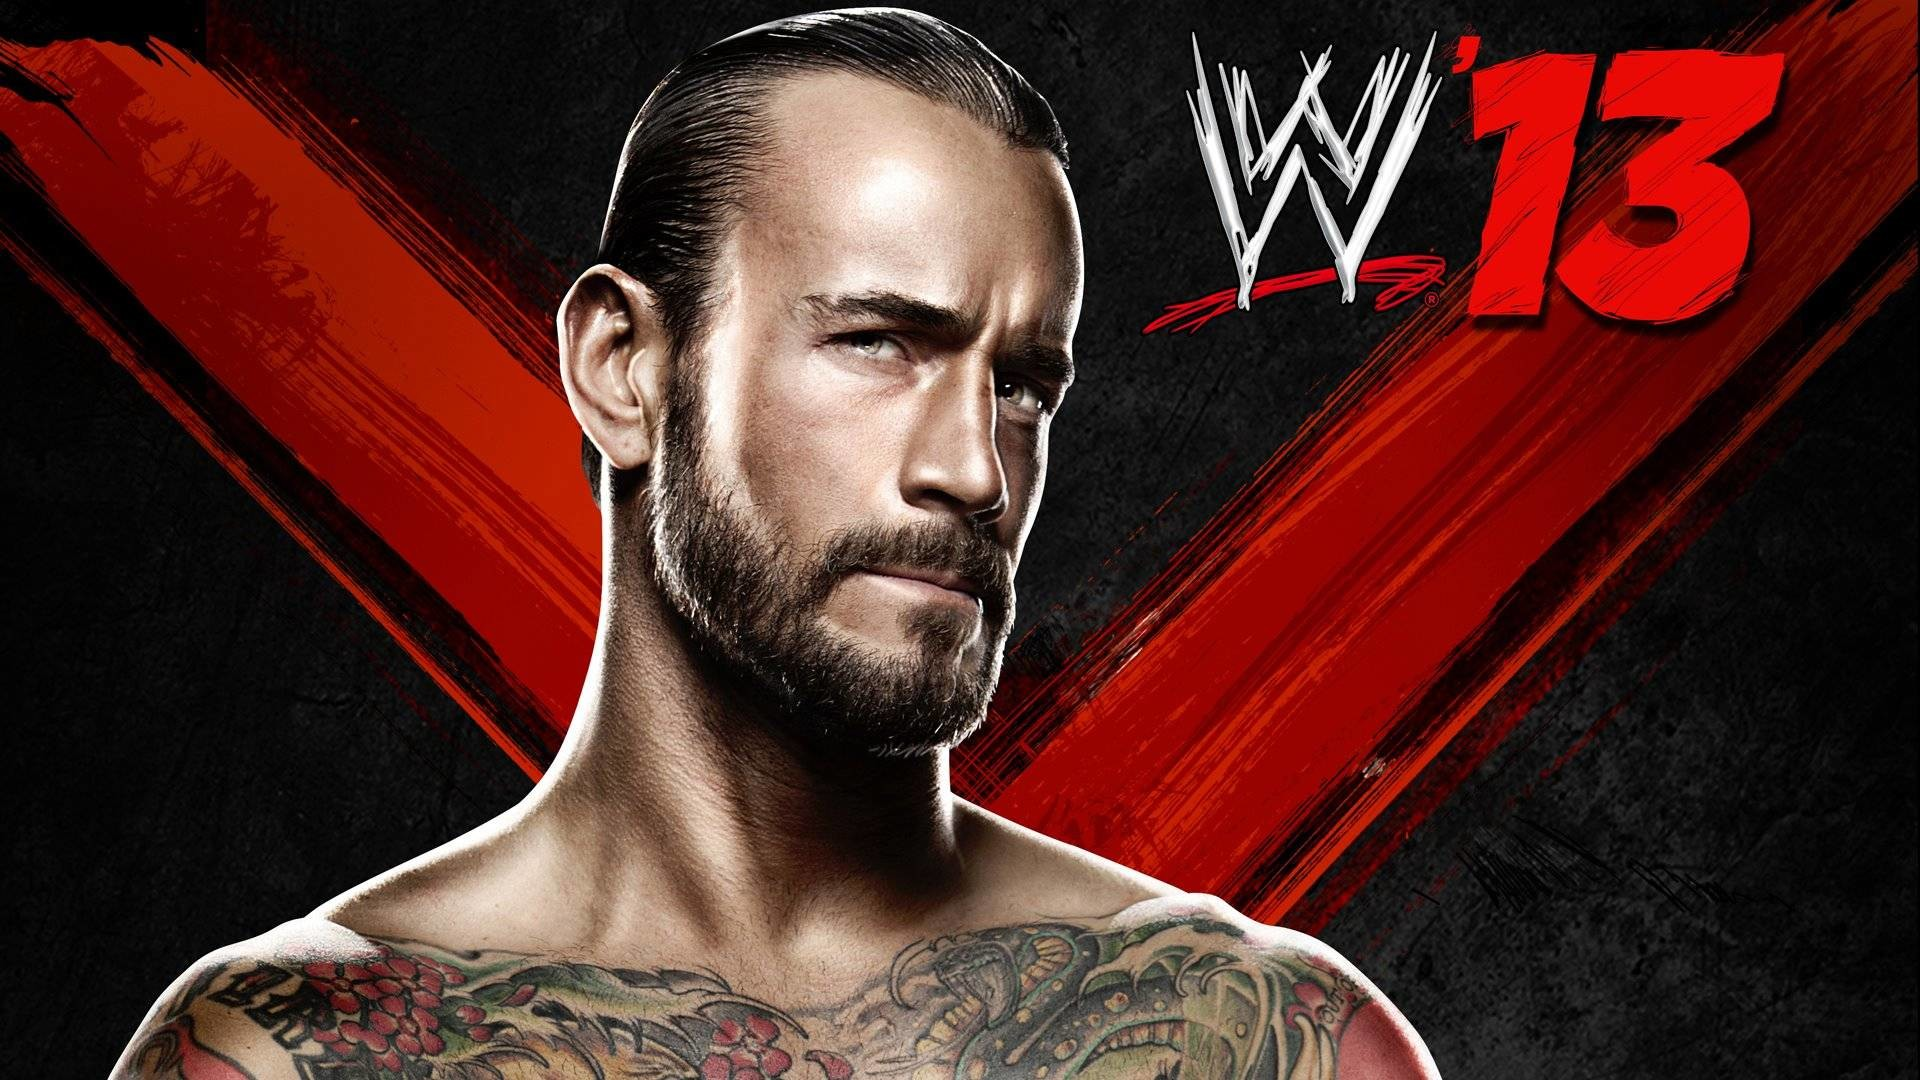 1920x1080 WWE 13 Wallpapers in HD Â« GamingBolt.com: Video Game News, Reviews .